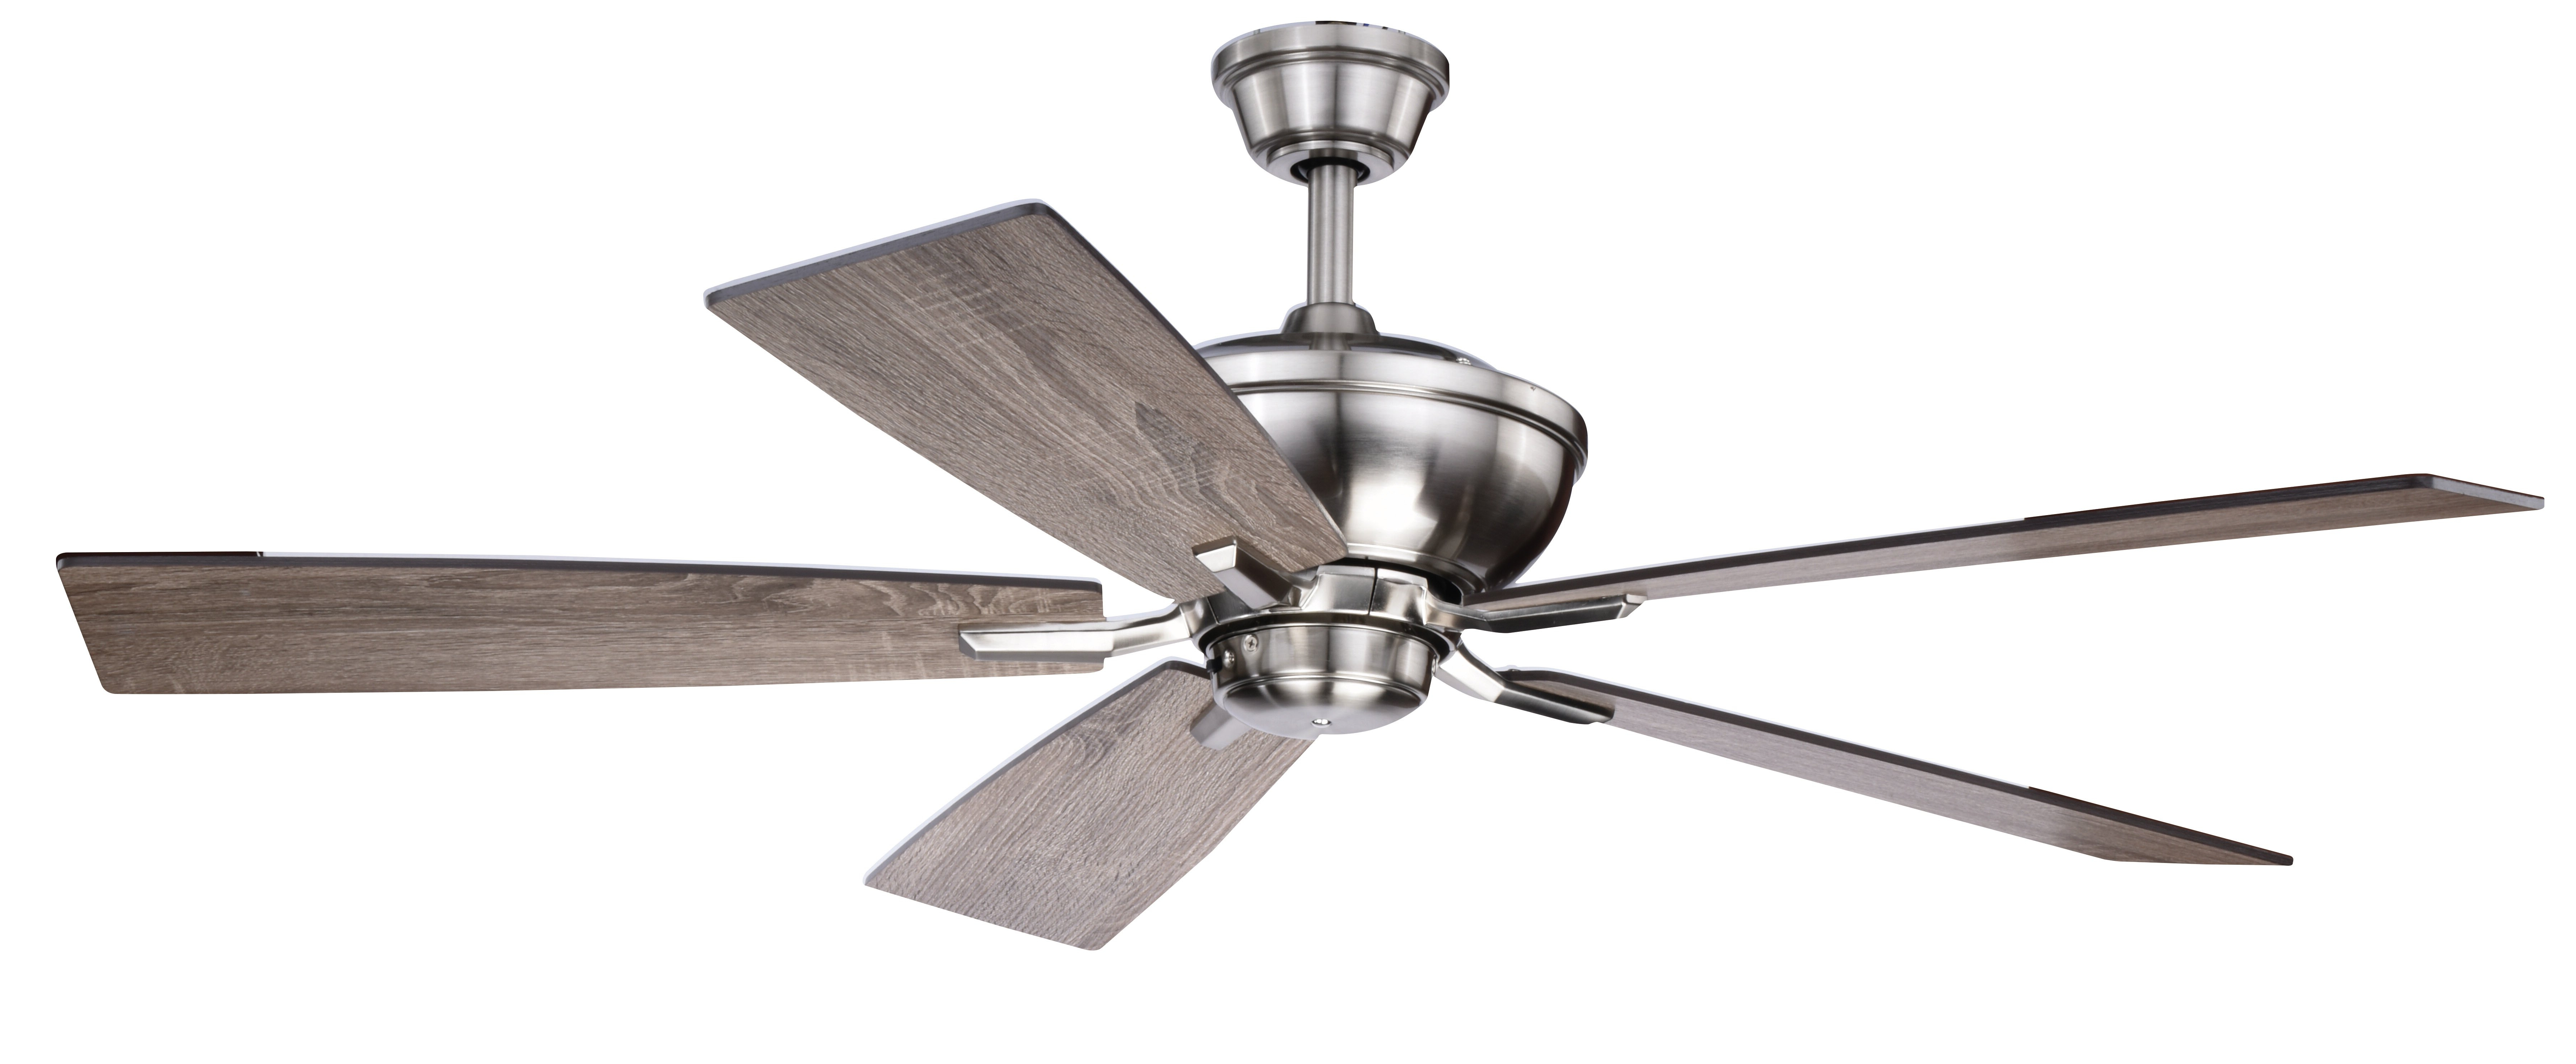 """Recent Clybourn 5 Blade Ceiling Fans In 52"""" Hirsch 5 Blade Ceiling Fan With Remote, Light Kit Included (View 15 of 20)"""